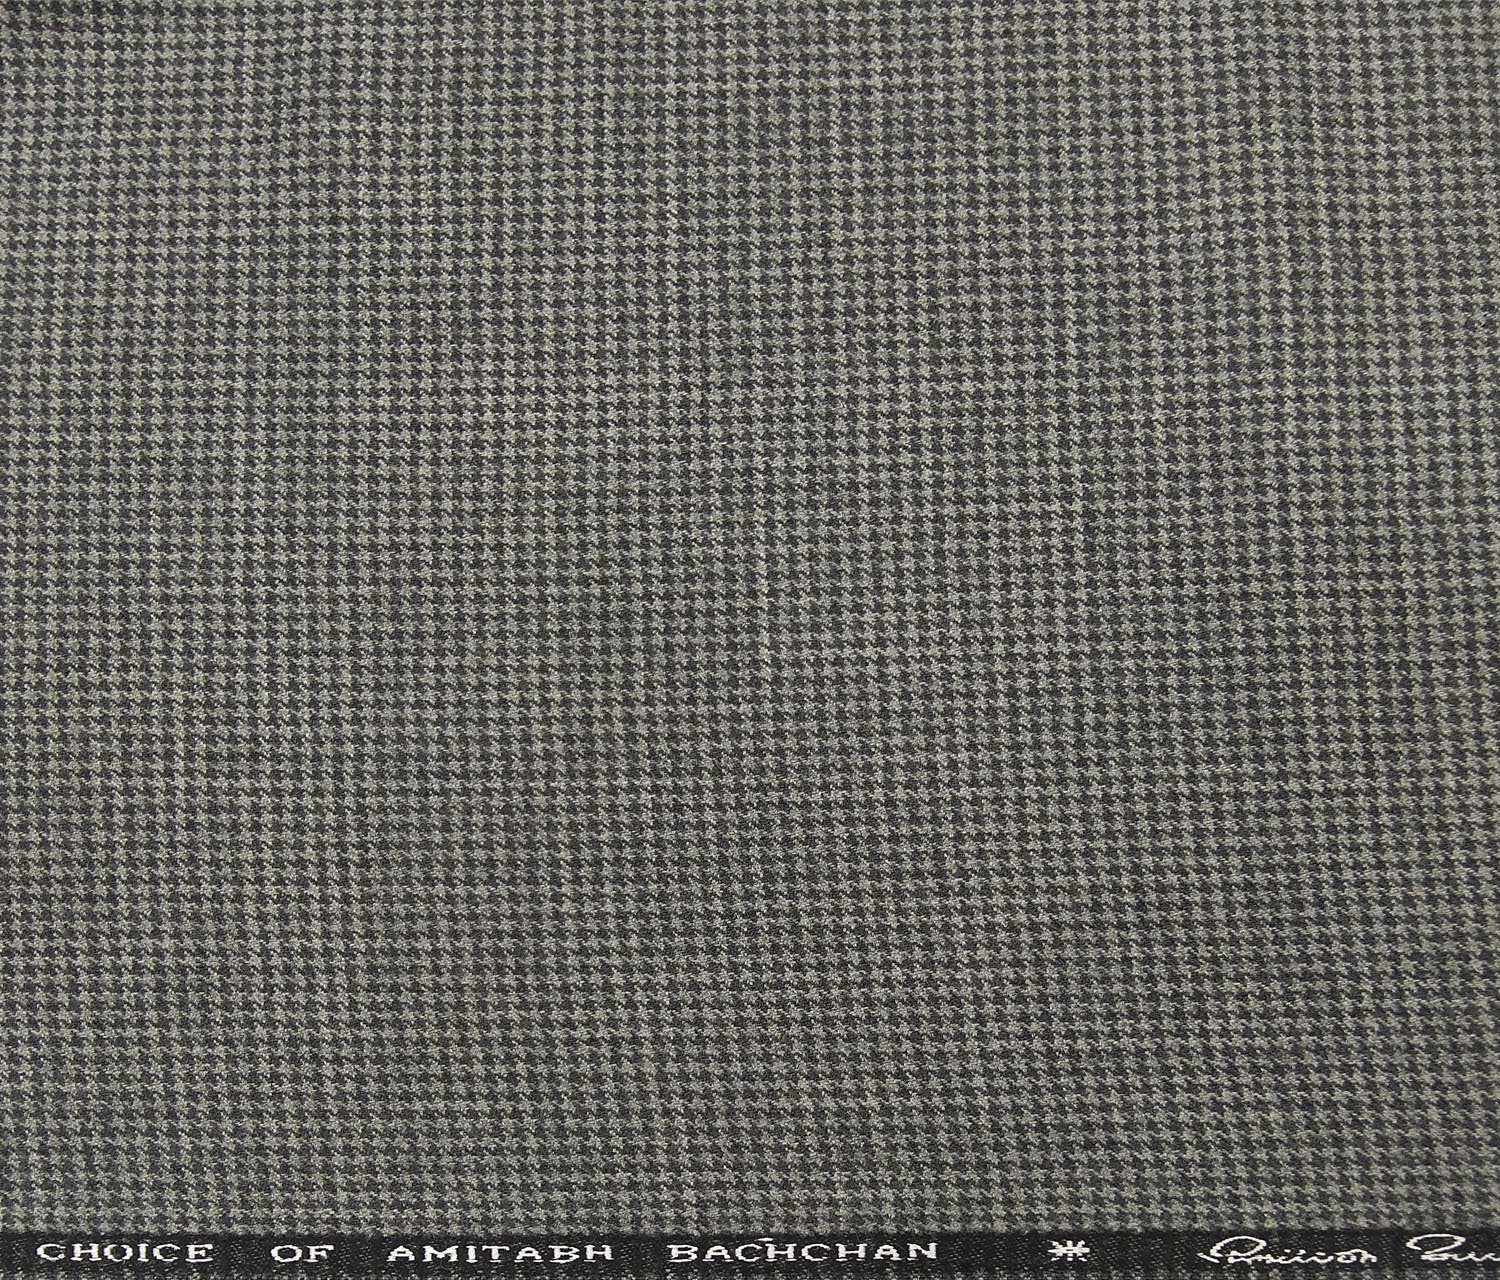 OCM Men's Wool Black Houndstooth Weave 2 Meter Unstitched Tweed Jacketing & Blazer Fabric (Grey)